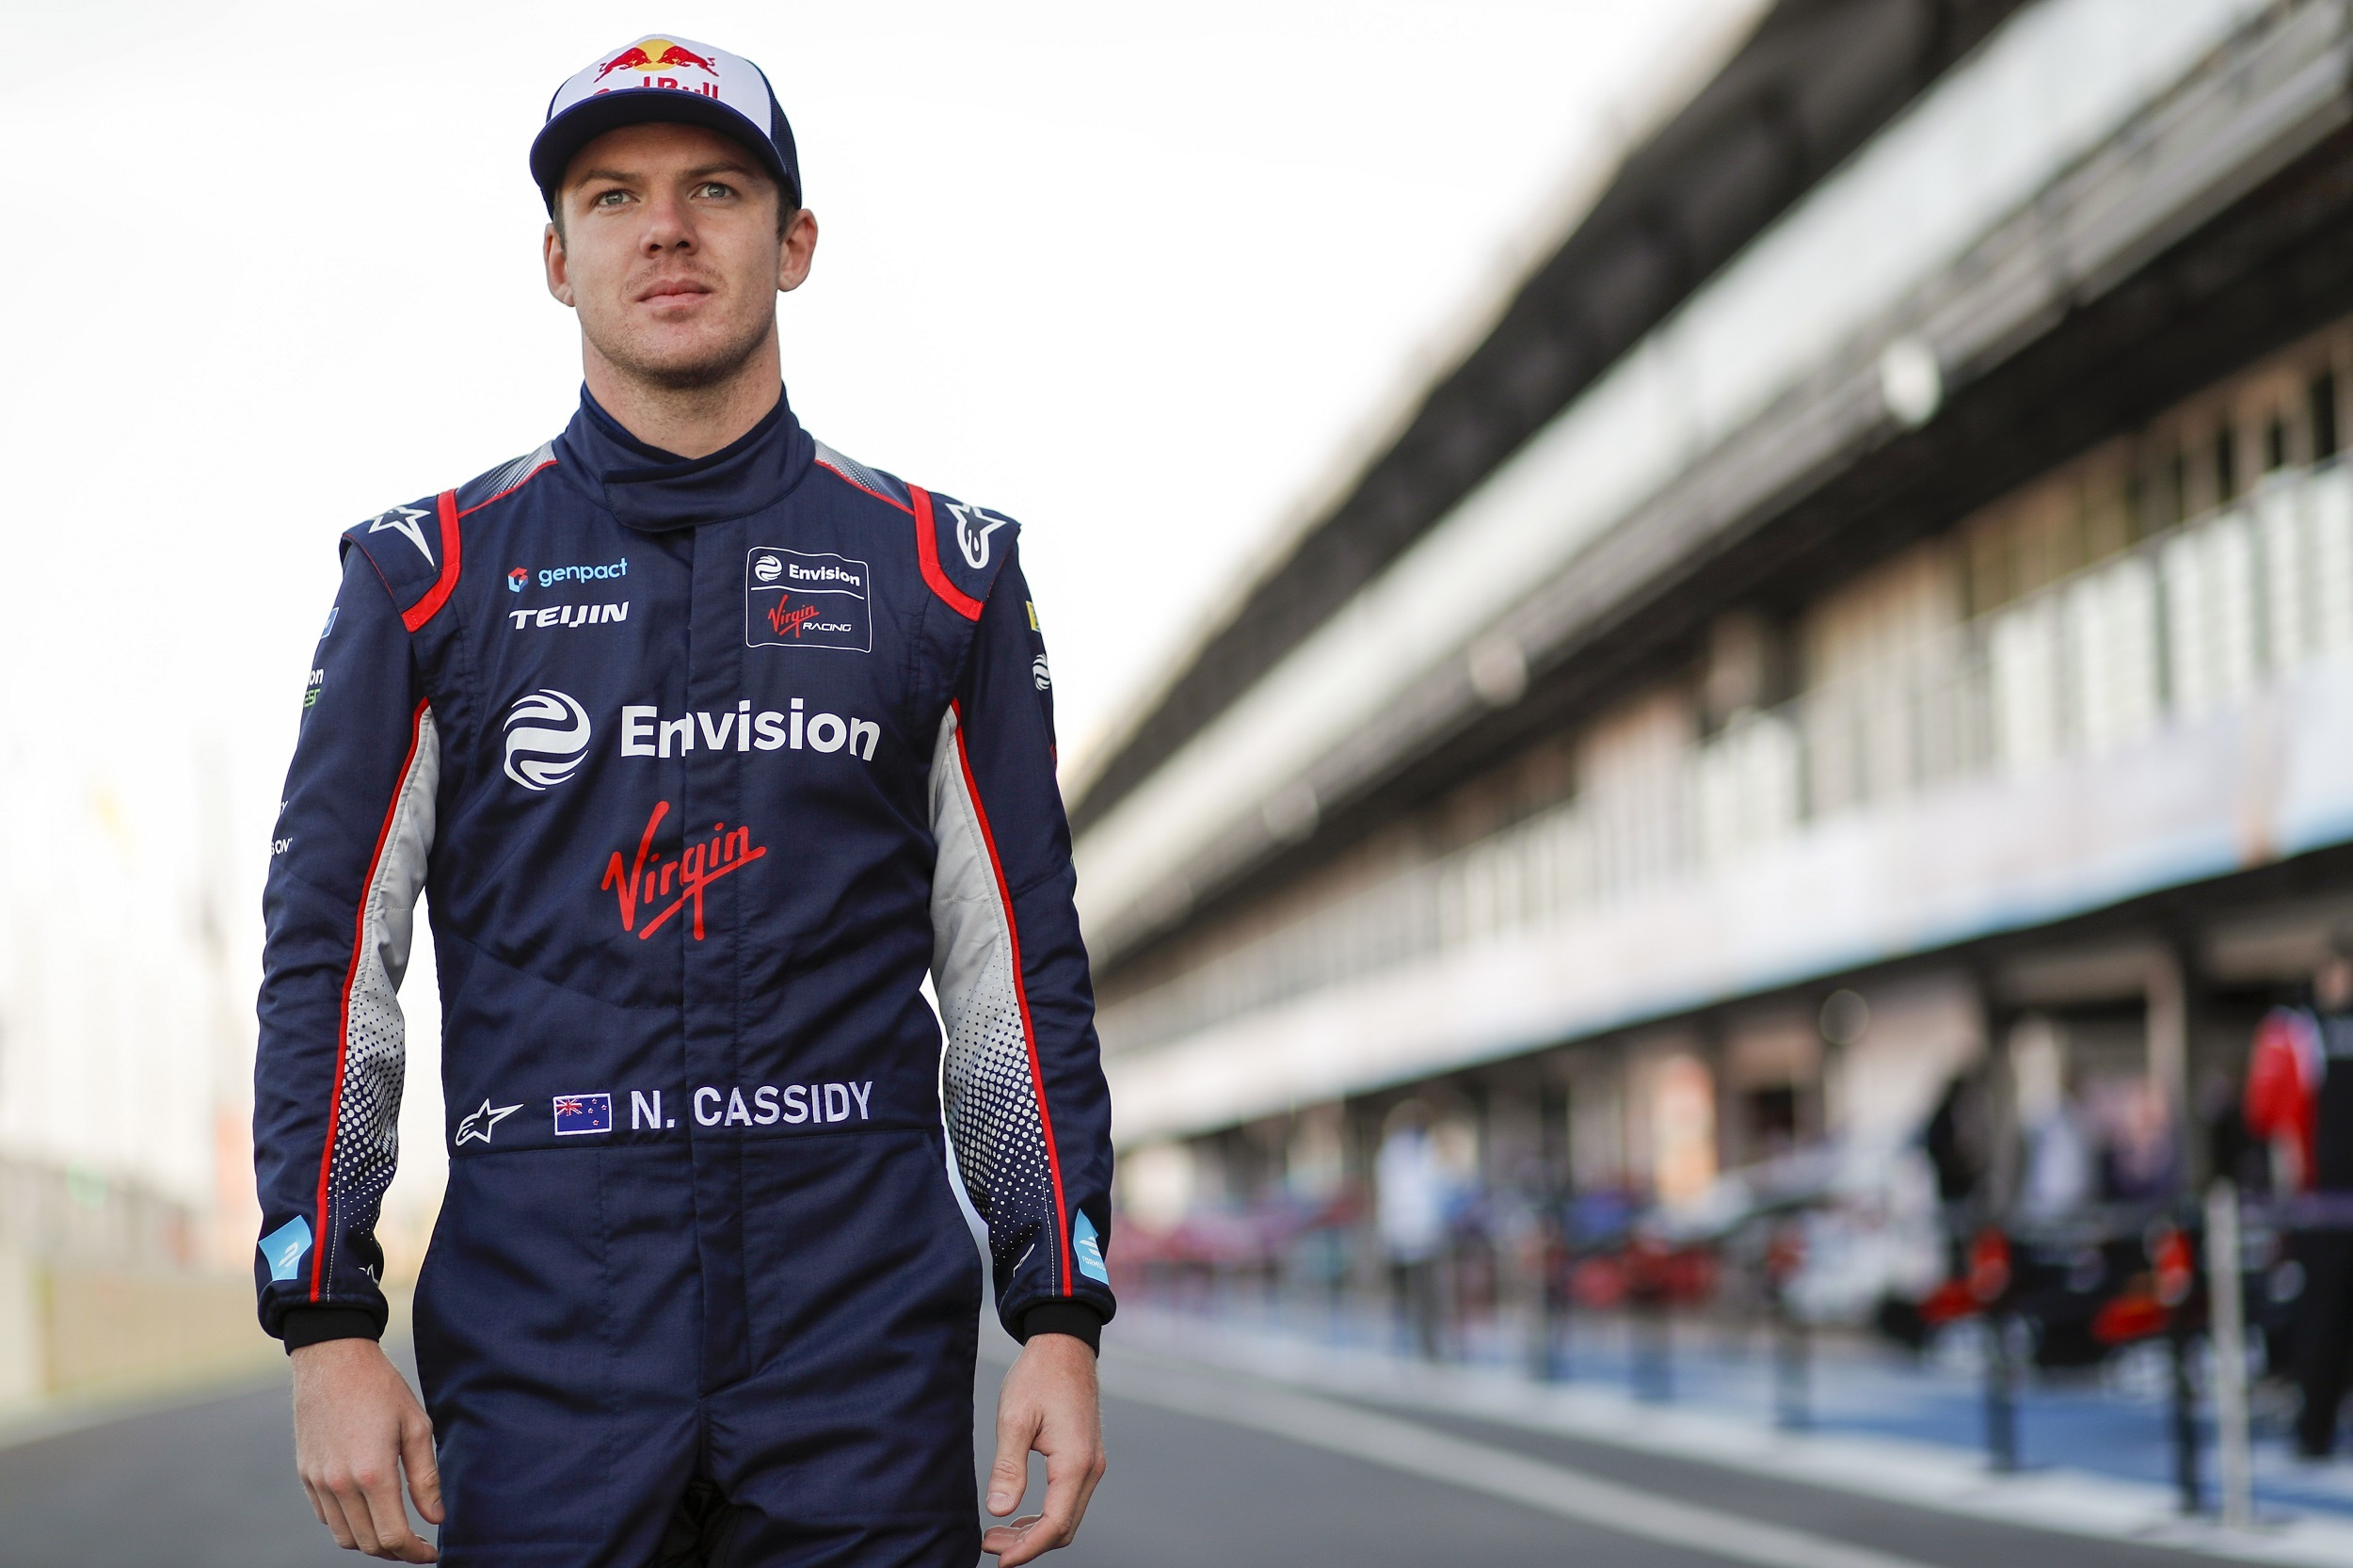 Nick Cassidy Envision Virgin Formula E test